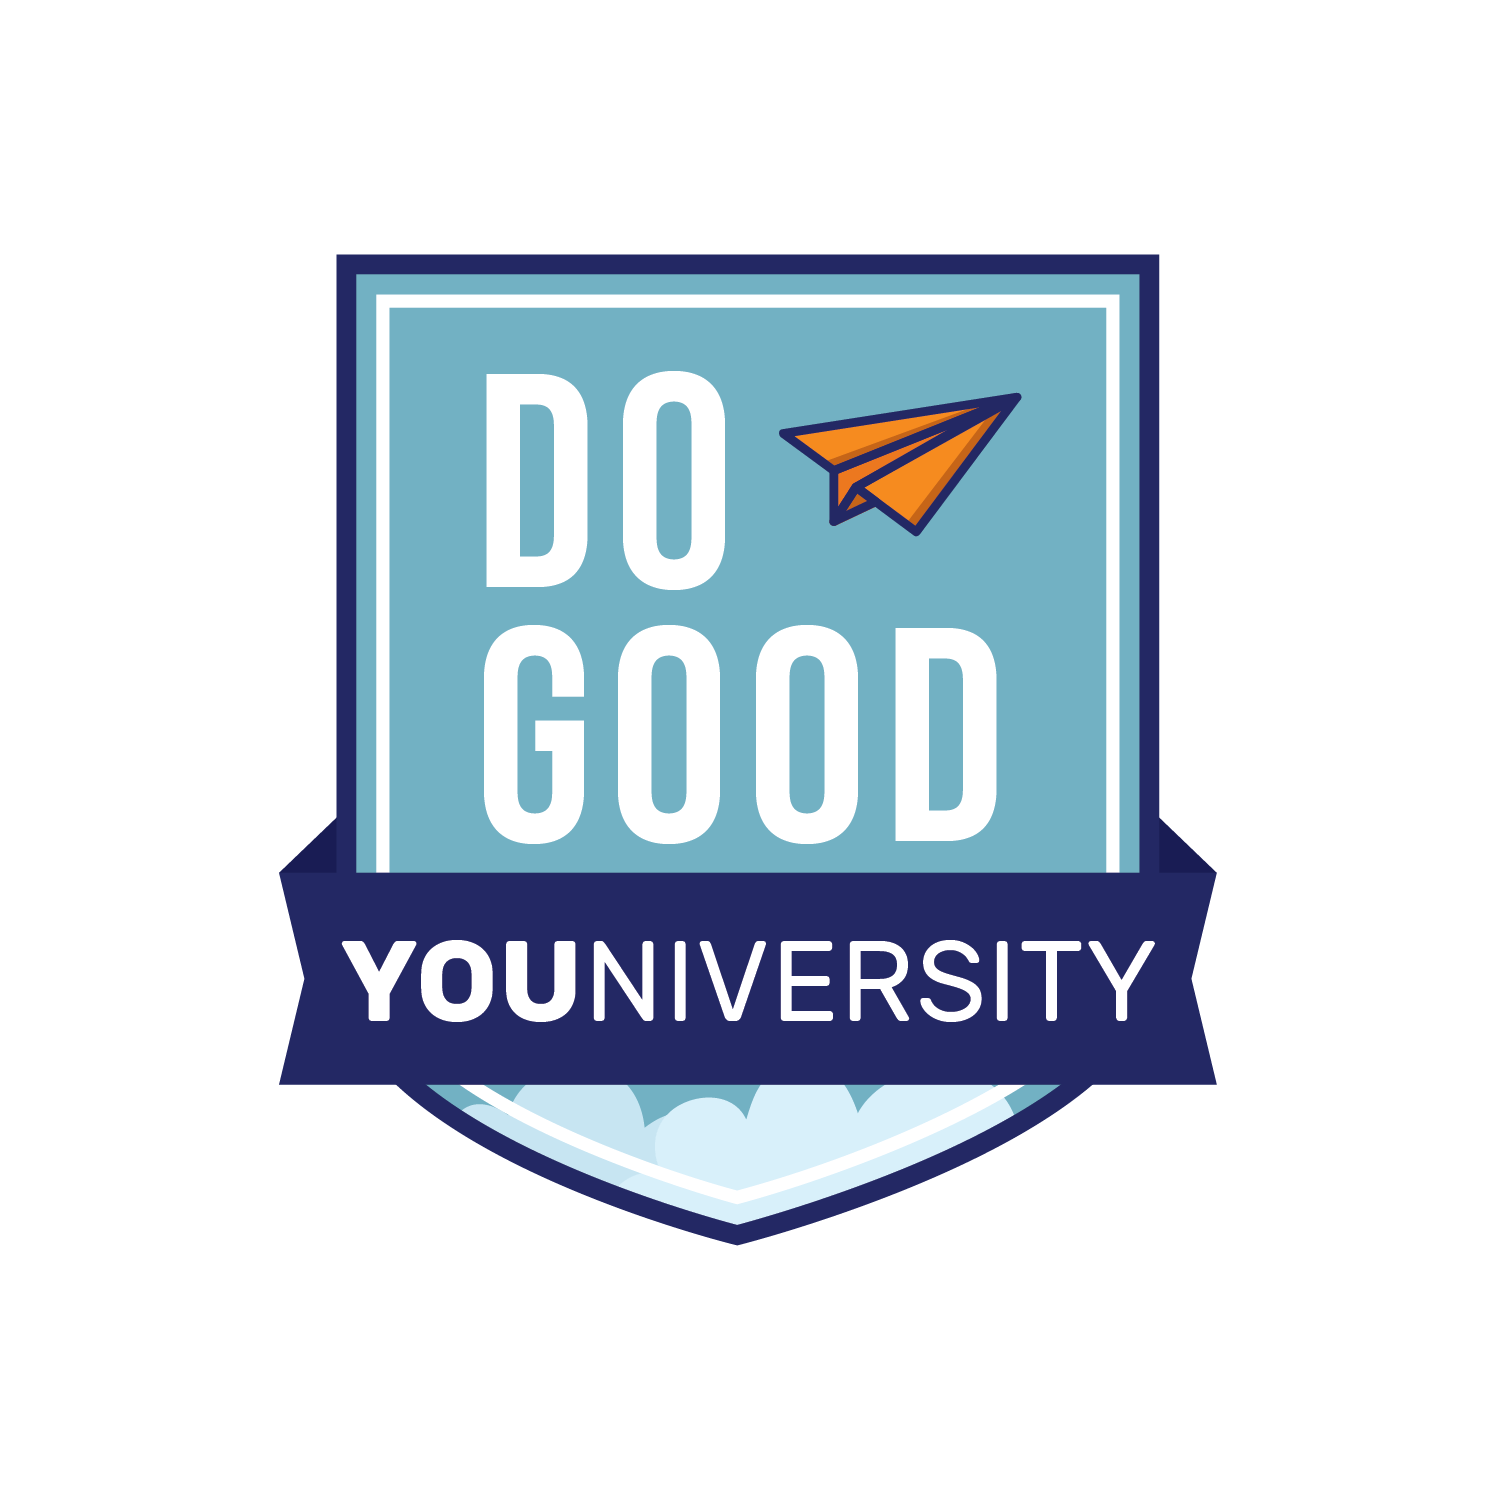 Do Good YOUniversity